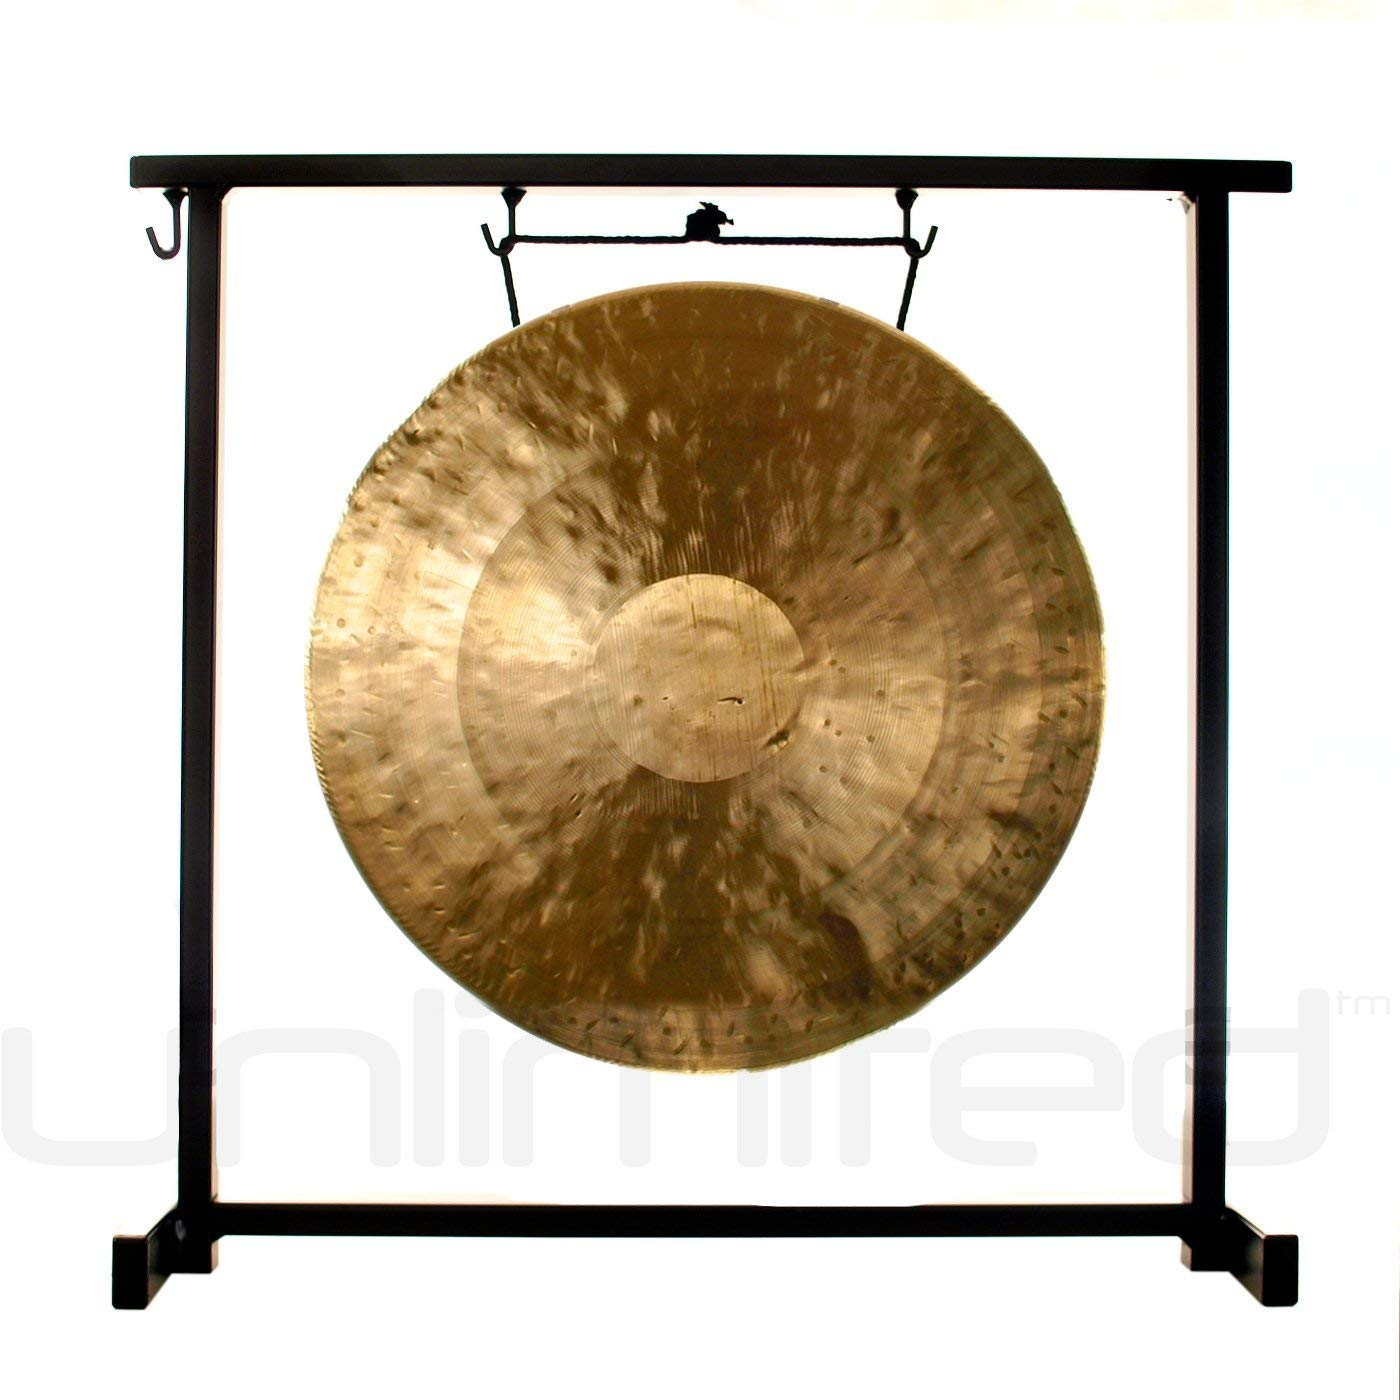 11'' to 12'' Gongs on the Zildjian Table-Top Gong Stand (P0561)